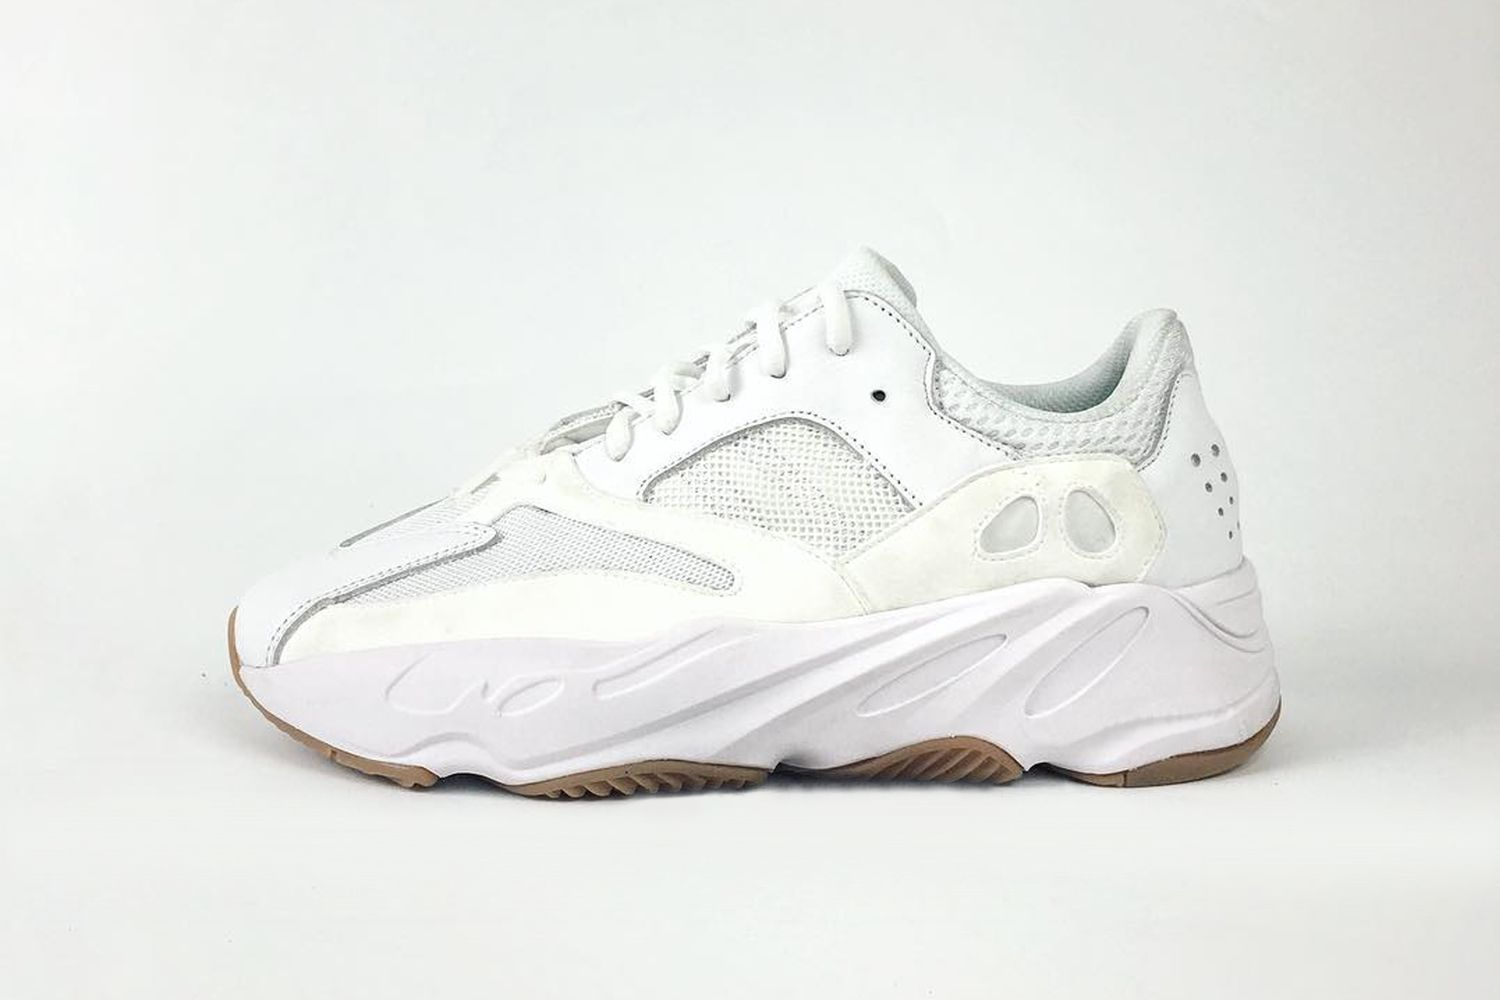 buy popular 92f8a cf224 YEEZY BOOST 700 Wave Runner Sneaker Release, White Sneakers, Shoes  Sneakers, Yeezy Boost